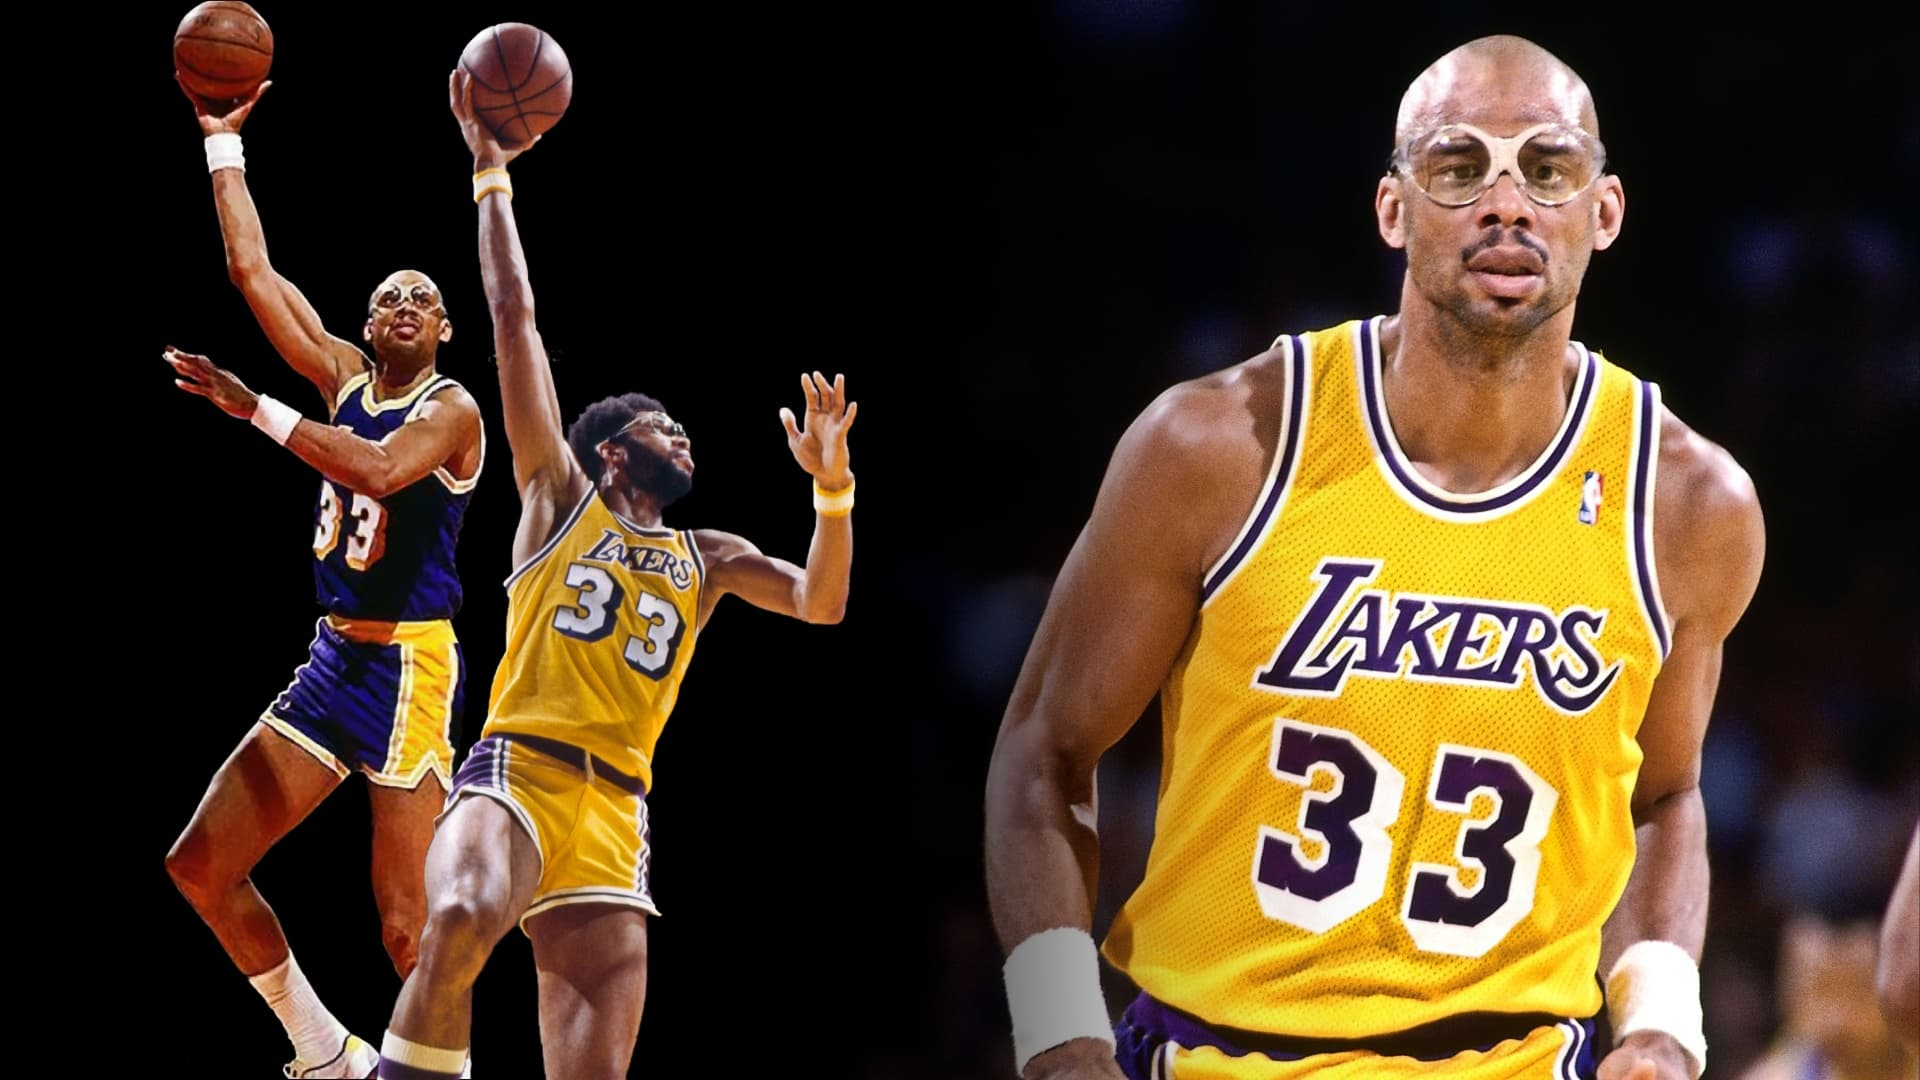 kareem abdul jabbar on why skyhook no longer a popular